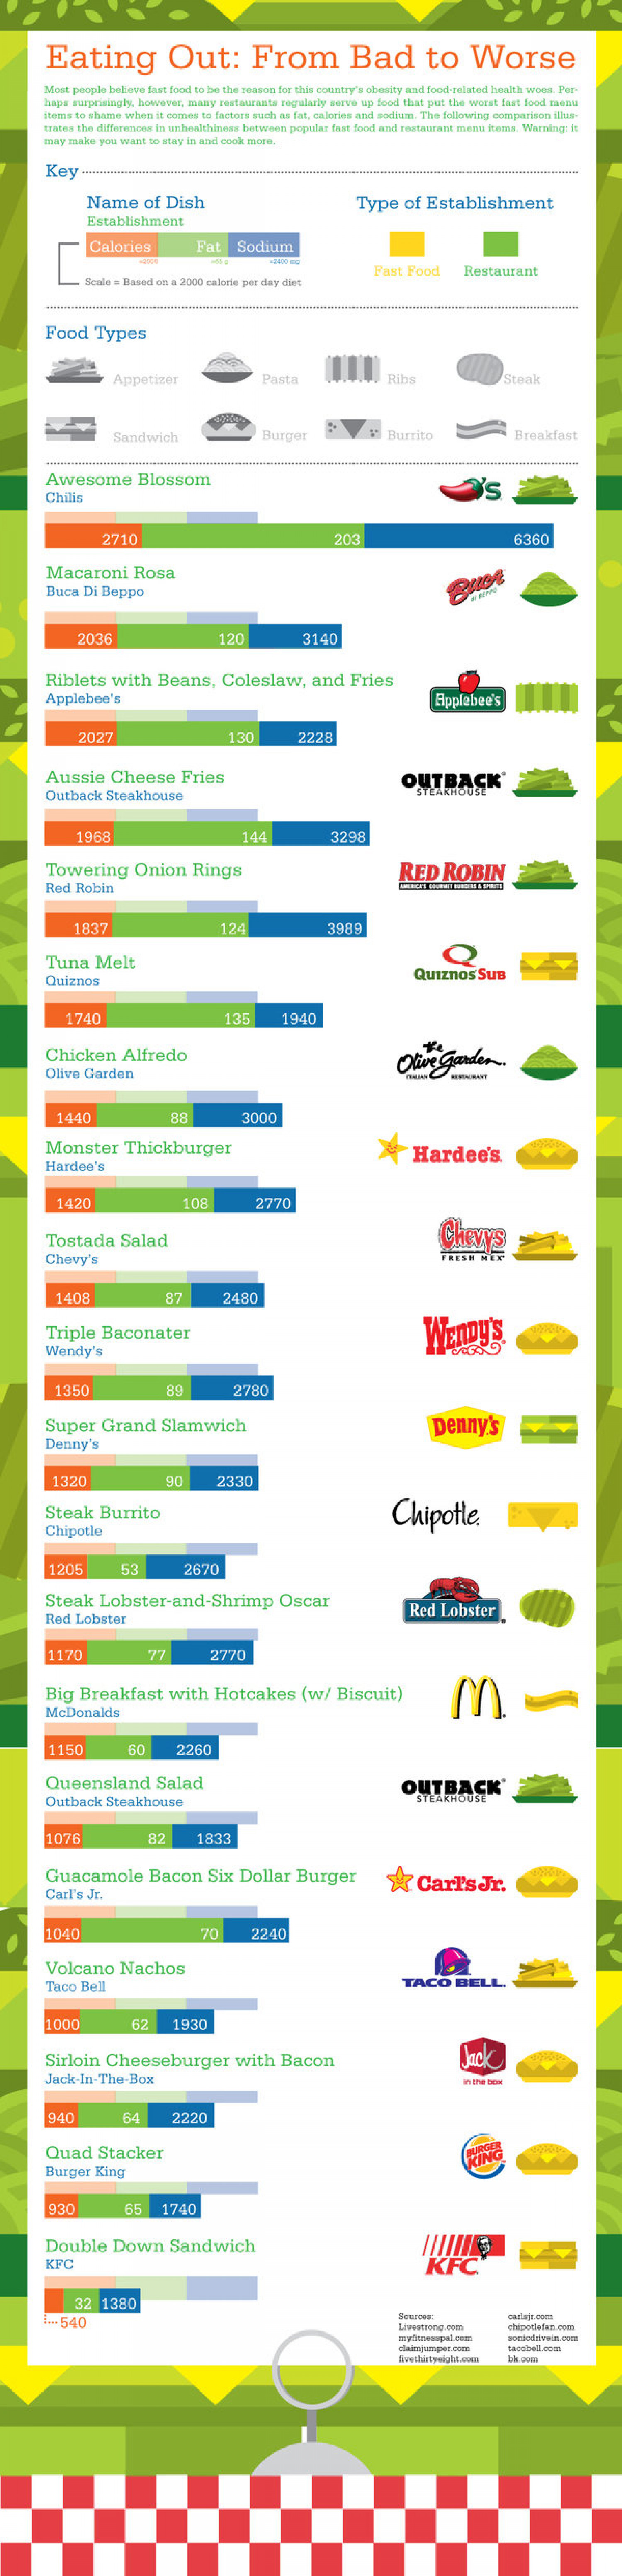 Eating Out: From Bad to Worse  Infographic